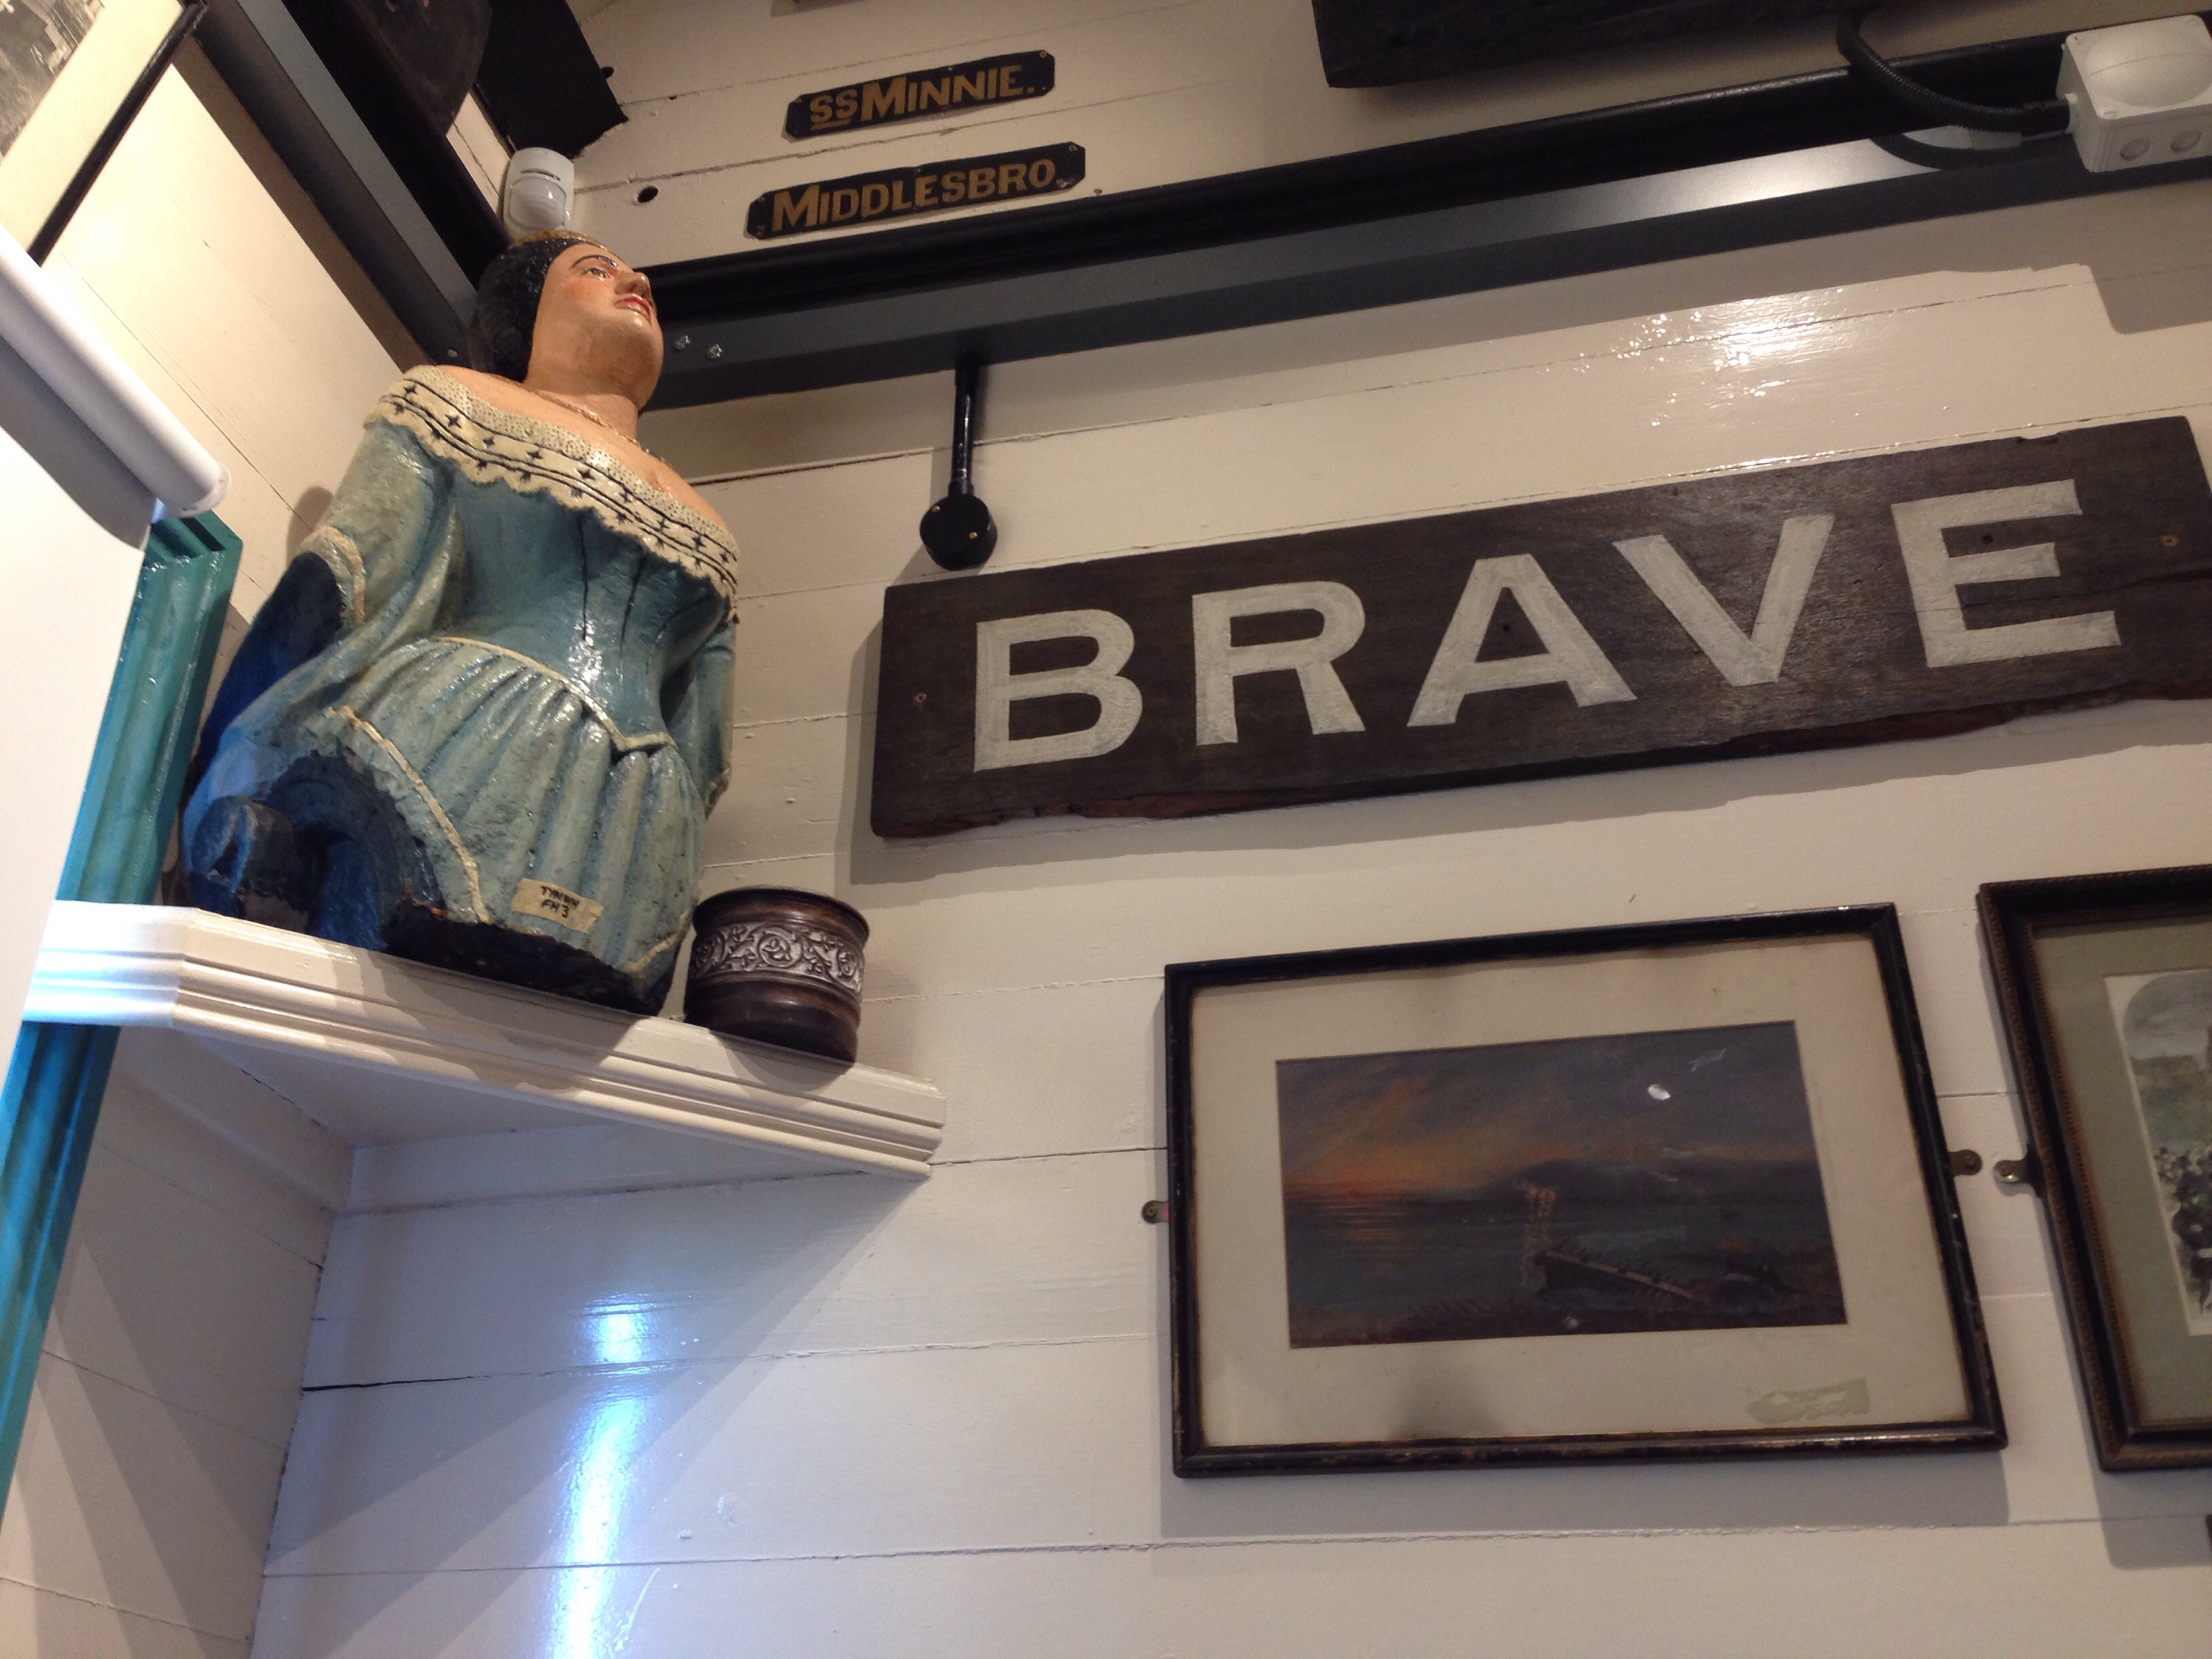 figurehead and signs in the tynemouth volunteer life brigade watch house museum